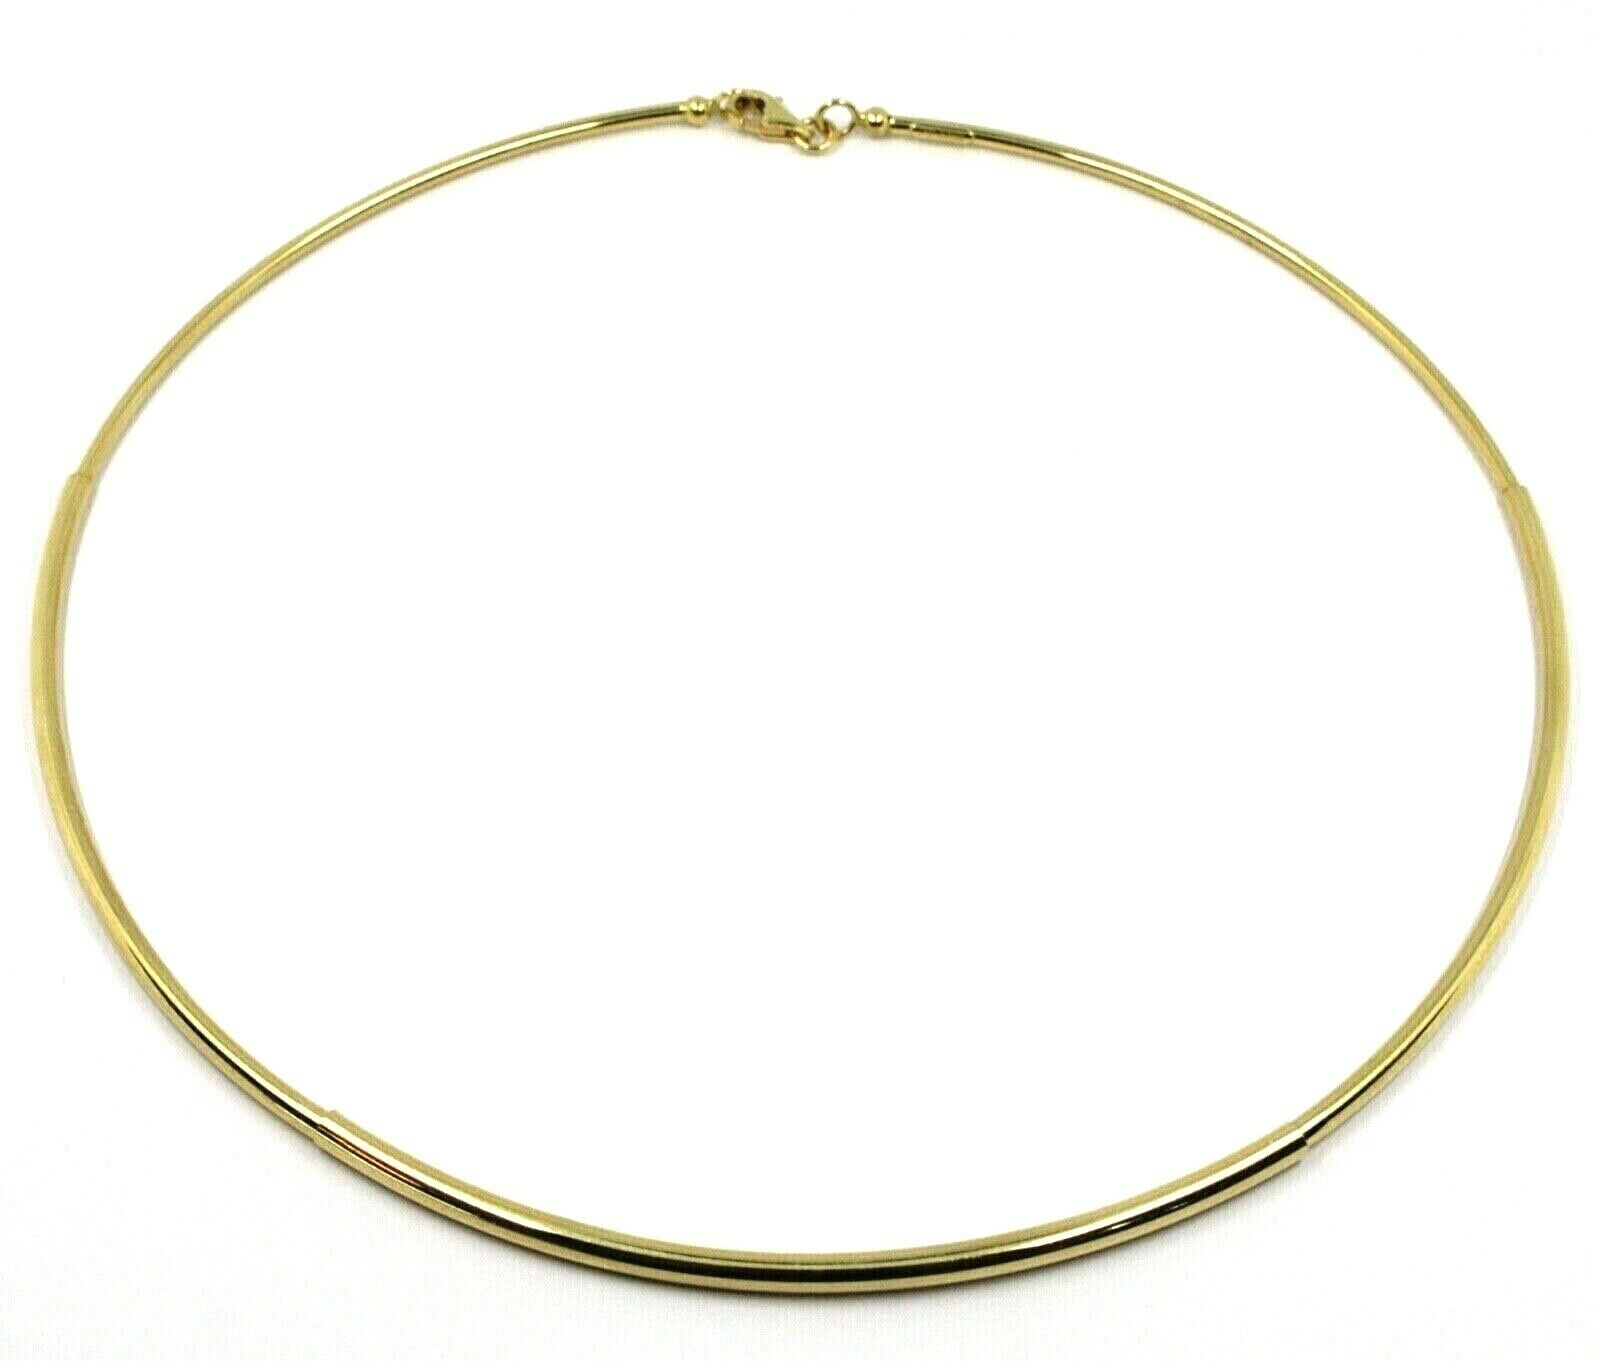 18K YELLOW GOLD RIGID NECKLACE CHOKER 3-THICKNESS TUBE FROM SMALL TO LARGE